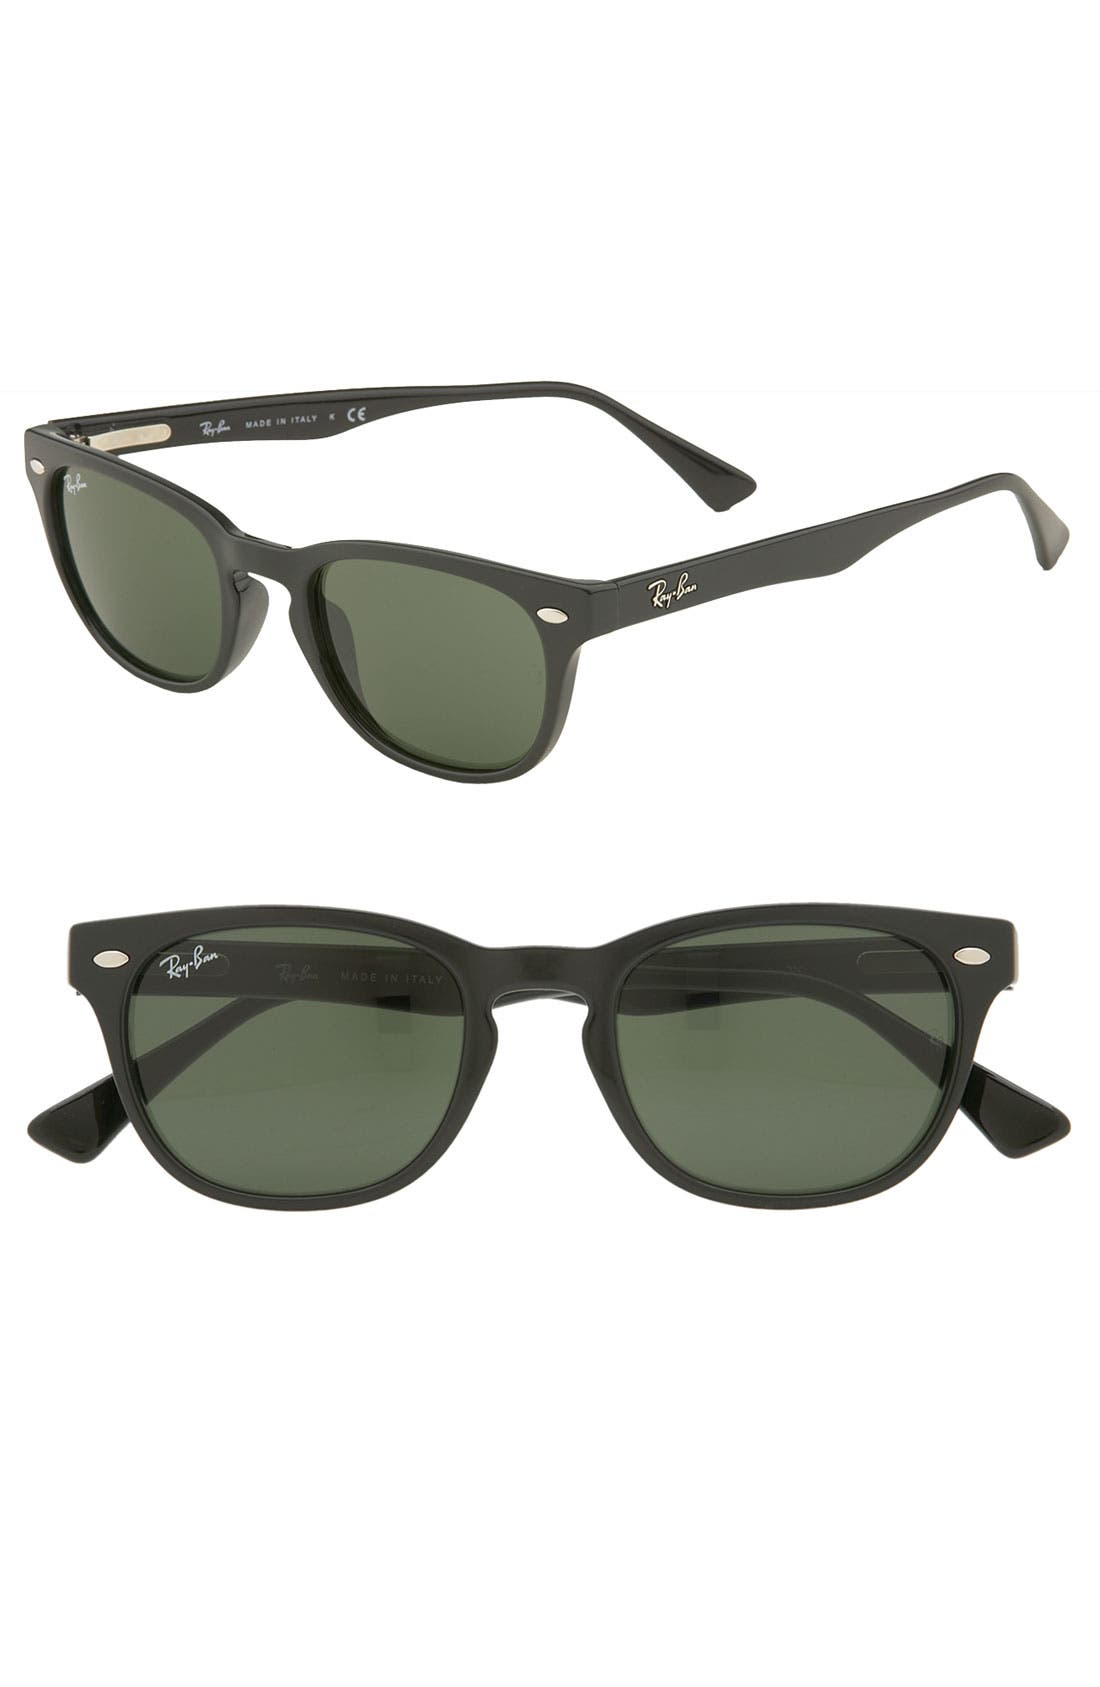 Main Image - Ray-Ban Retro Wayfarer Sunglasses